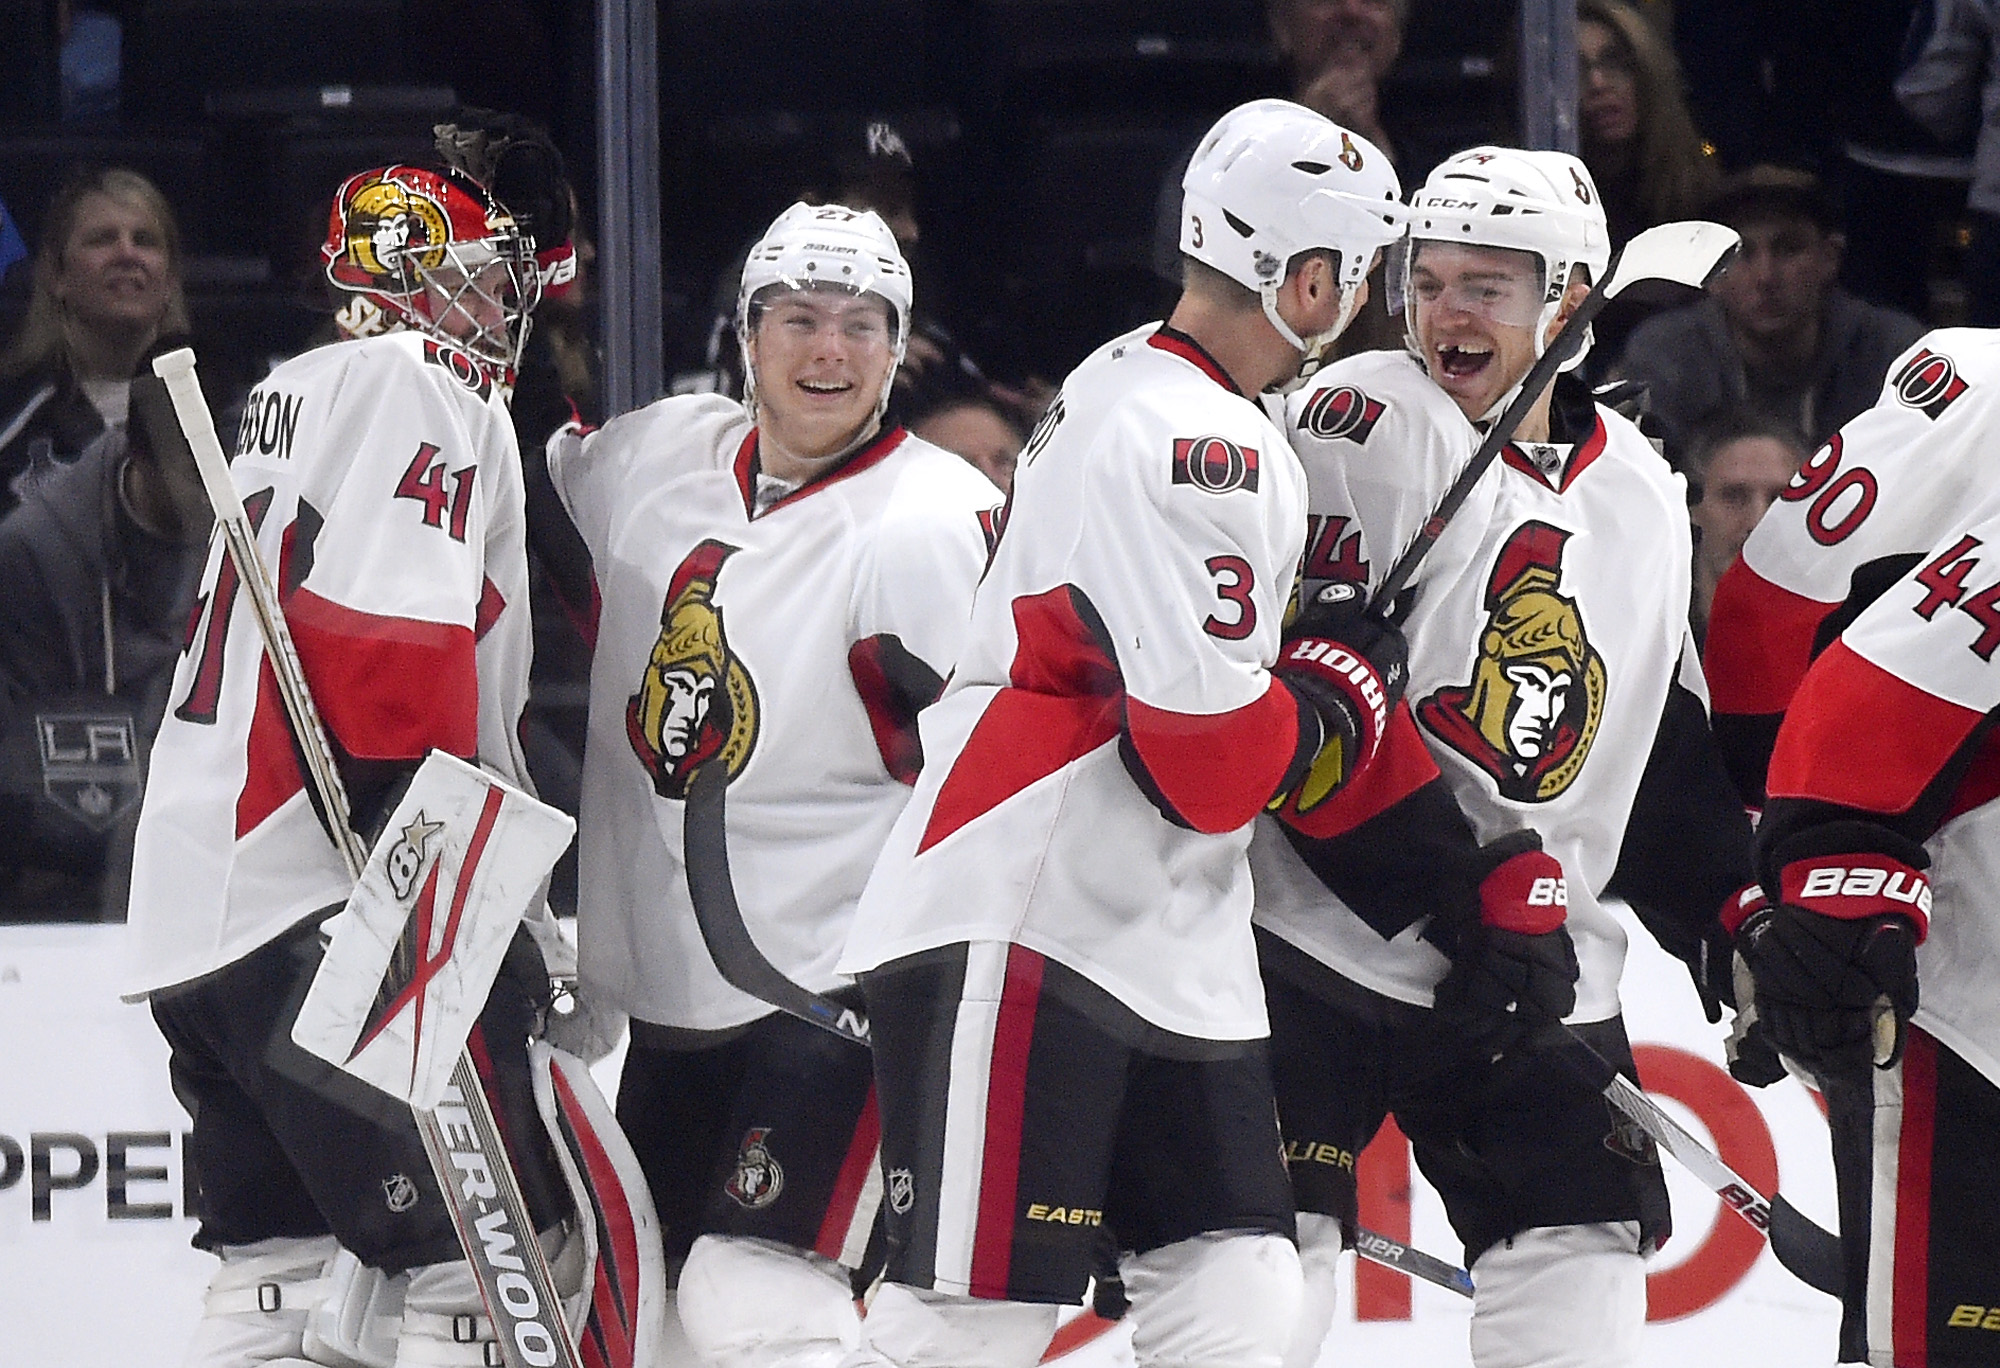 Ottawa Senators defenseman Mark Borowiecki, right, celebrates his goal with defenseman Marc Methot, second from right, as goalie Craig Anderson, left, celebrates with right wing Curtis Lazar during the third period of an NHL hockey game against the Los An